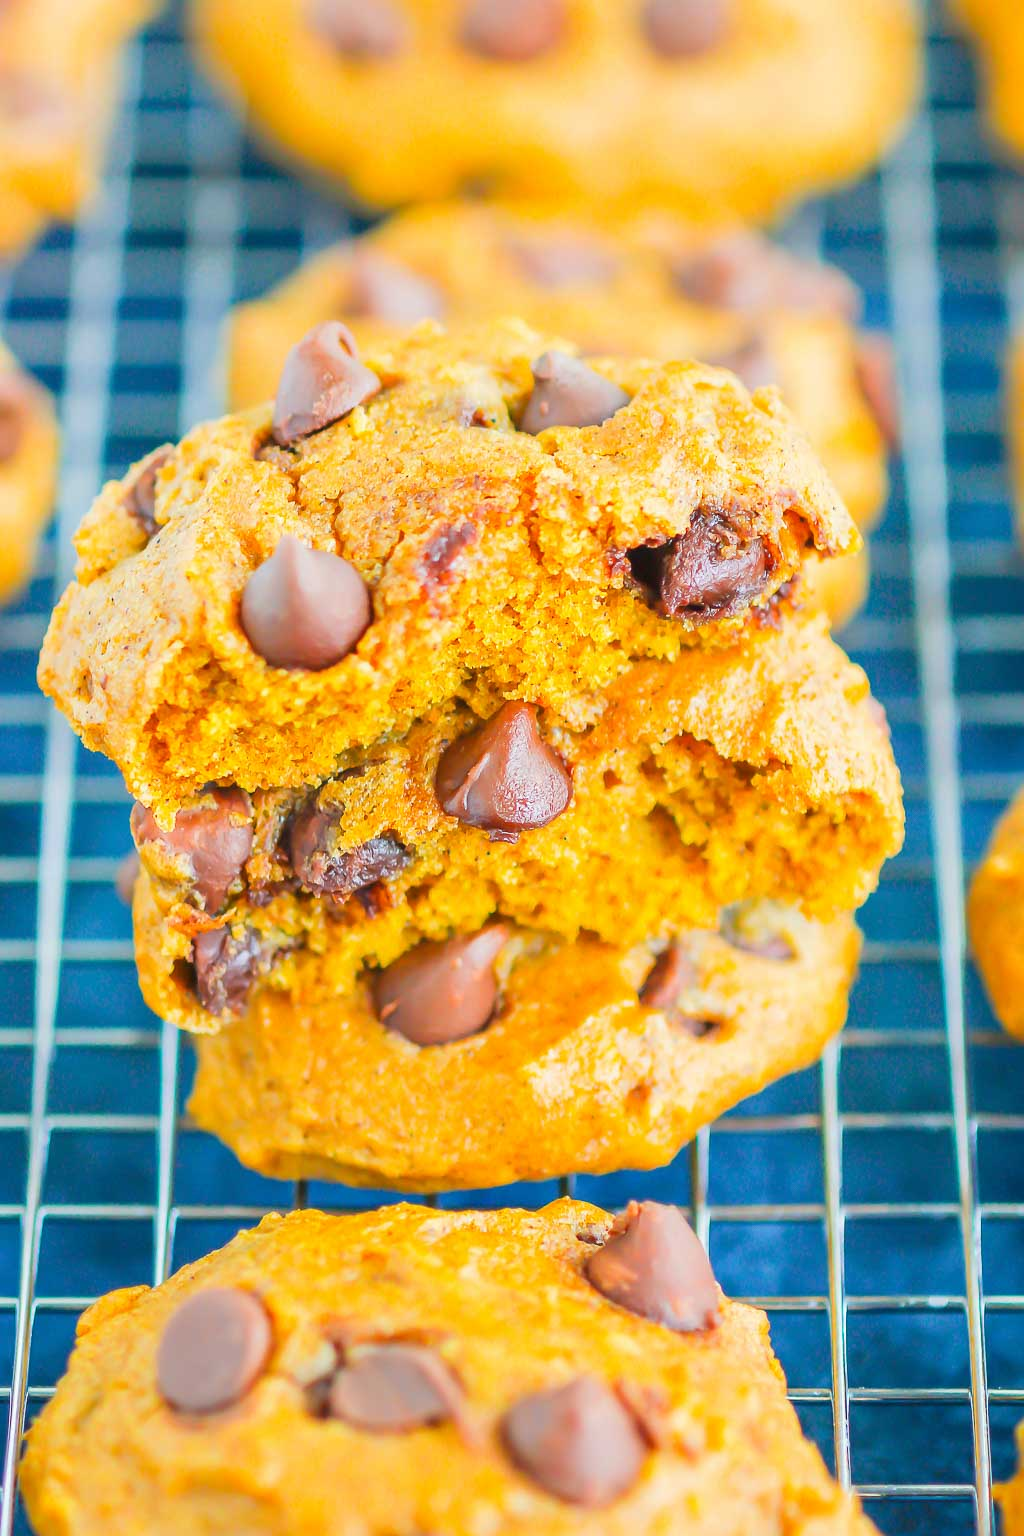 Pumpkin Chocolate Chip Cookies are an easy, one bowl recipe that's ready in no time. These cookies bake up soft and cakey, with hints of pumpkin and sweet chocolate. It's the perfect combination for an autumn sweet treat! #cookies #pumpkincookies #pumpkinchocolatechipcookies #pumpkindessert #falldessert #pumpkinrecipe